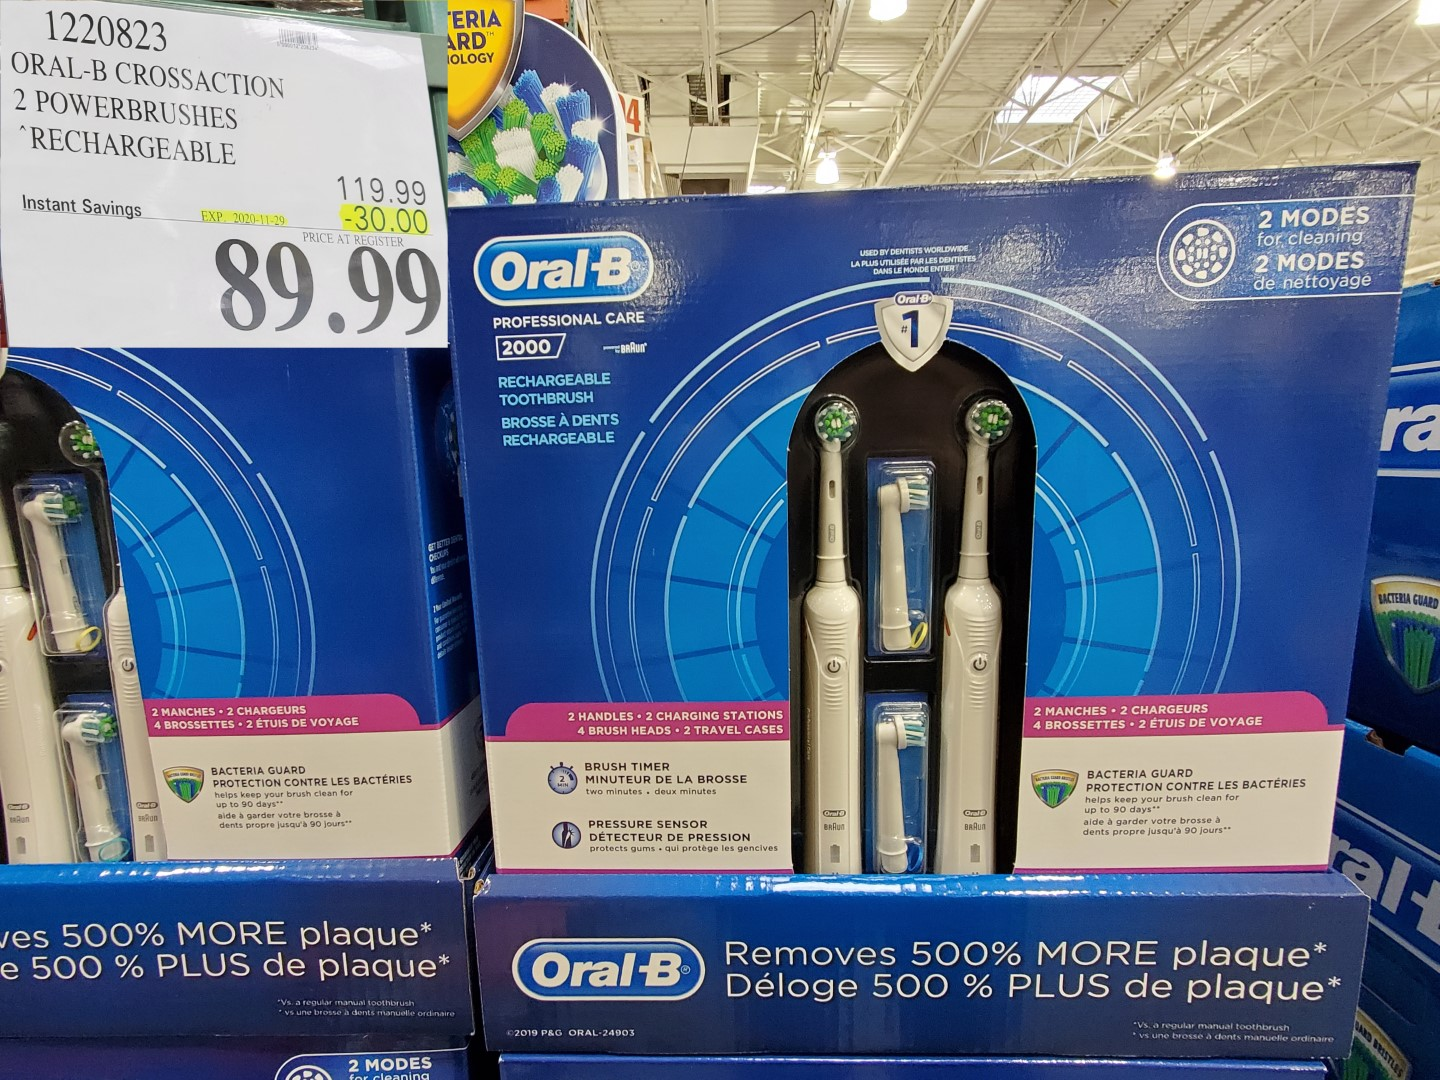 Oral-B crossaction dual brushes